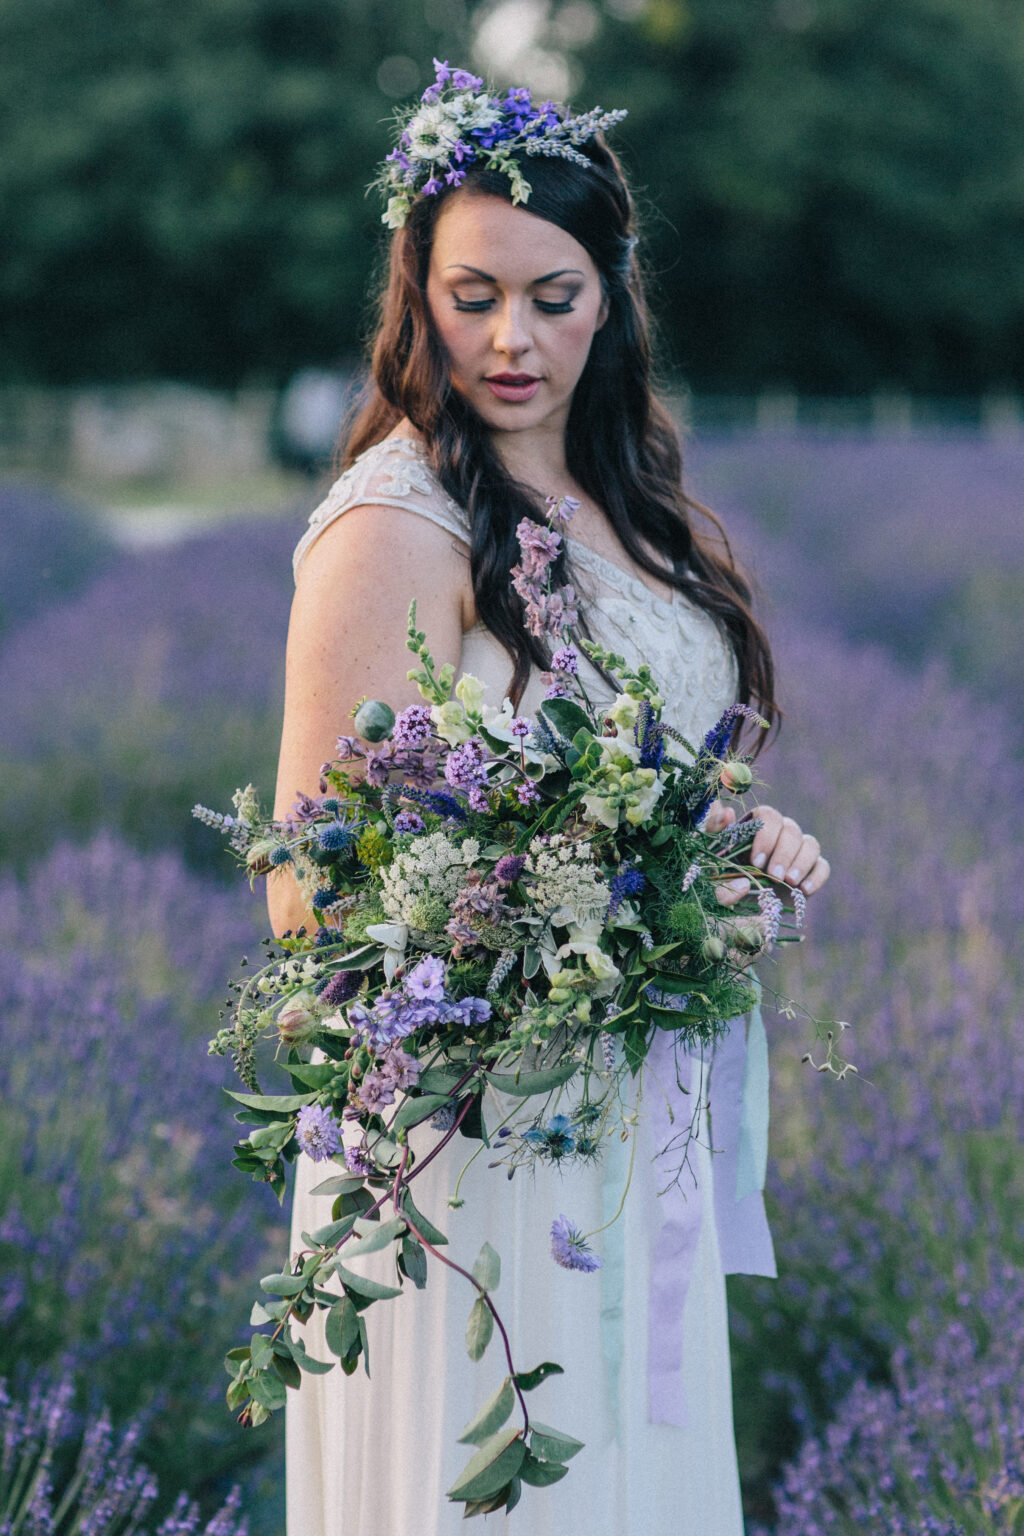 A beautiful cascading bouquet of lilac flowers captured as a bride holds it in a lavender field.